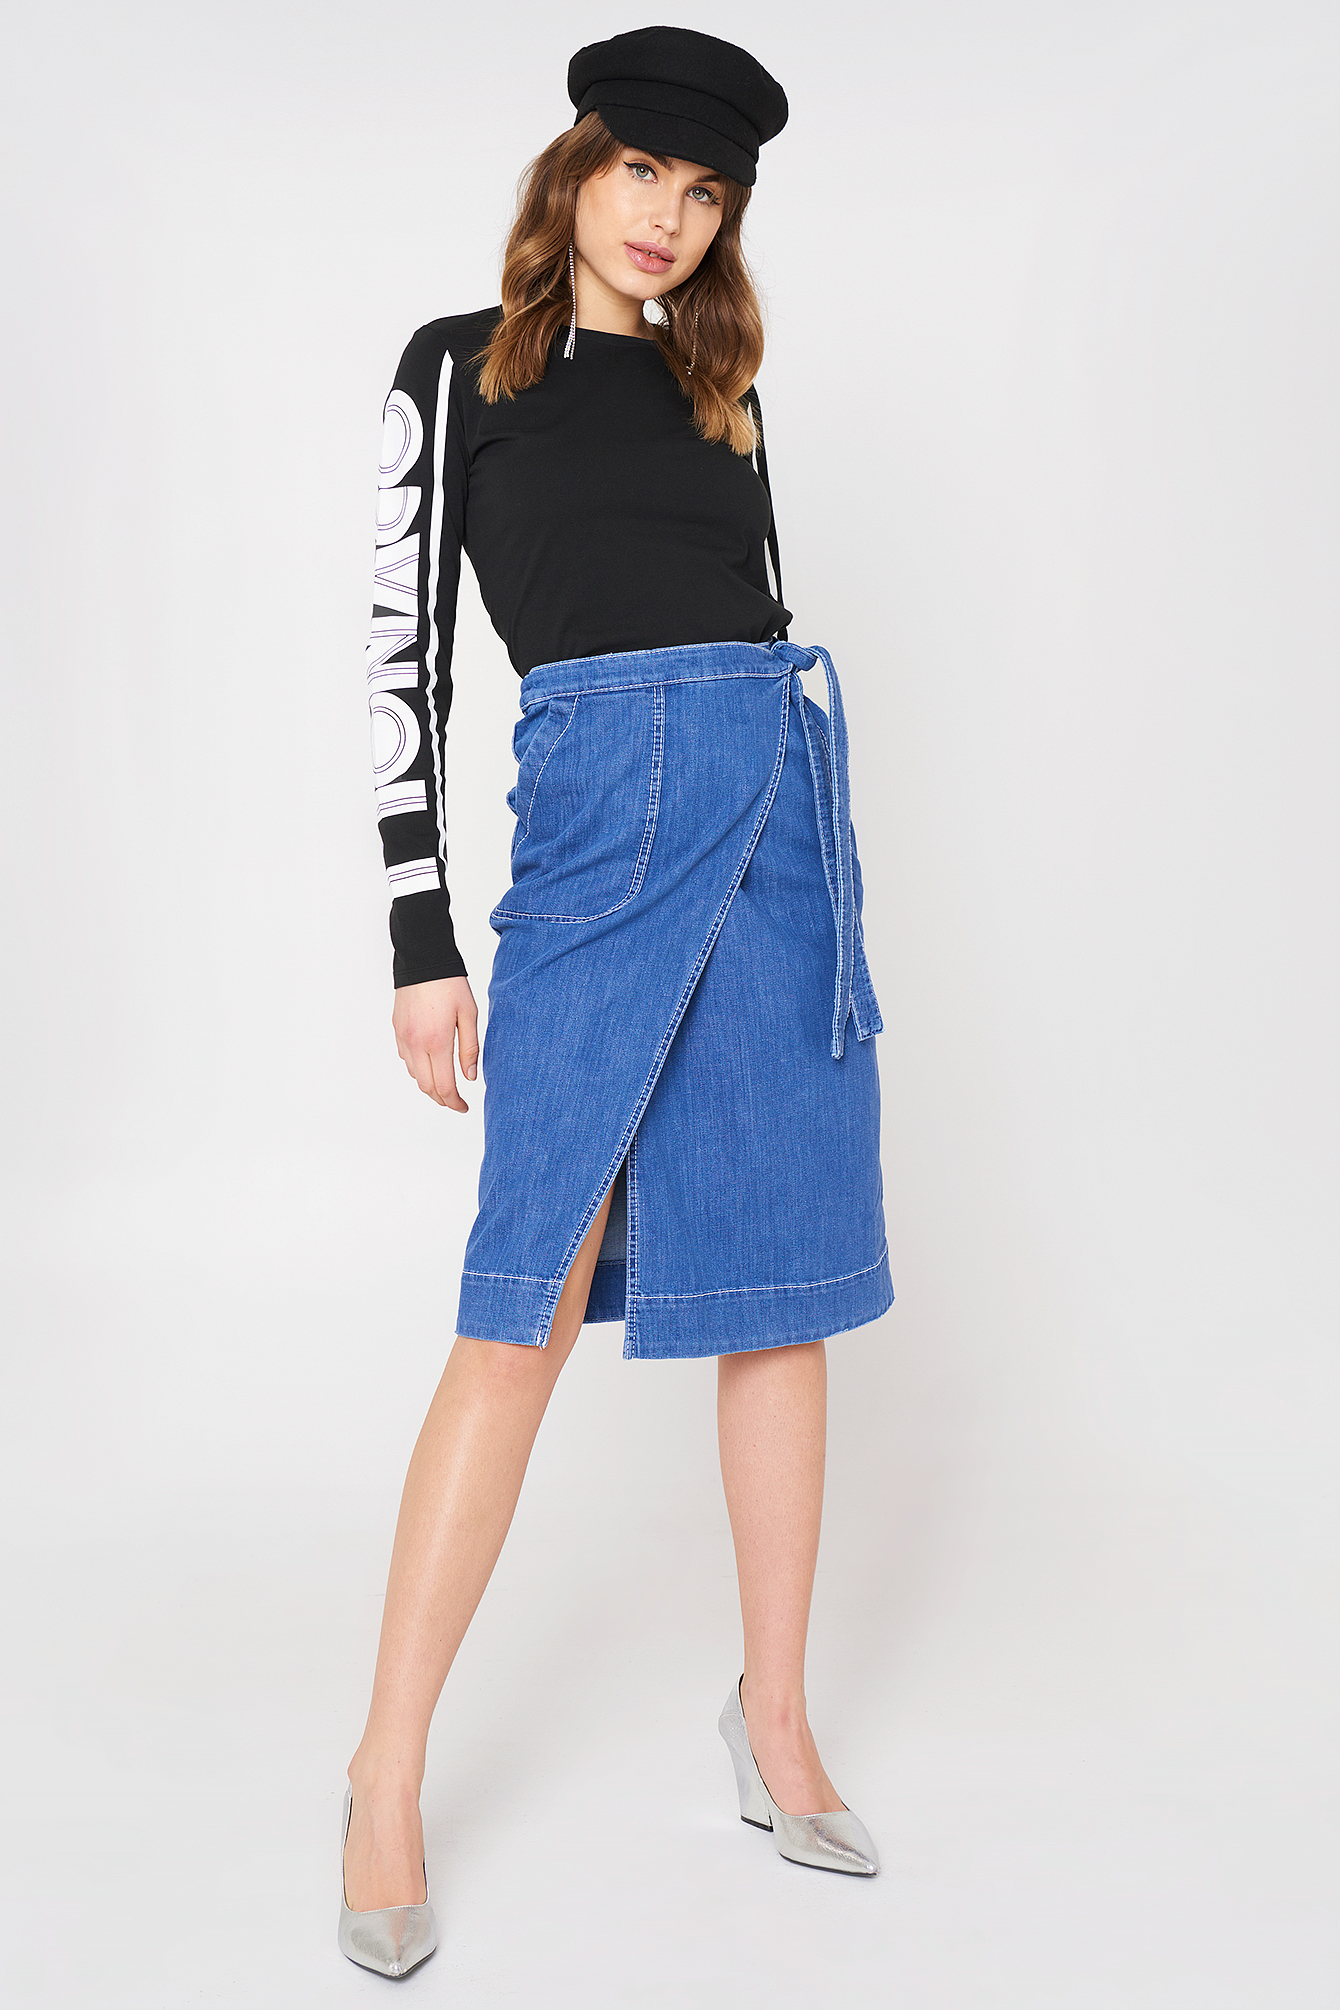 tommy hilfiger -  Lylyan Skirt - Blue